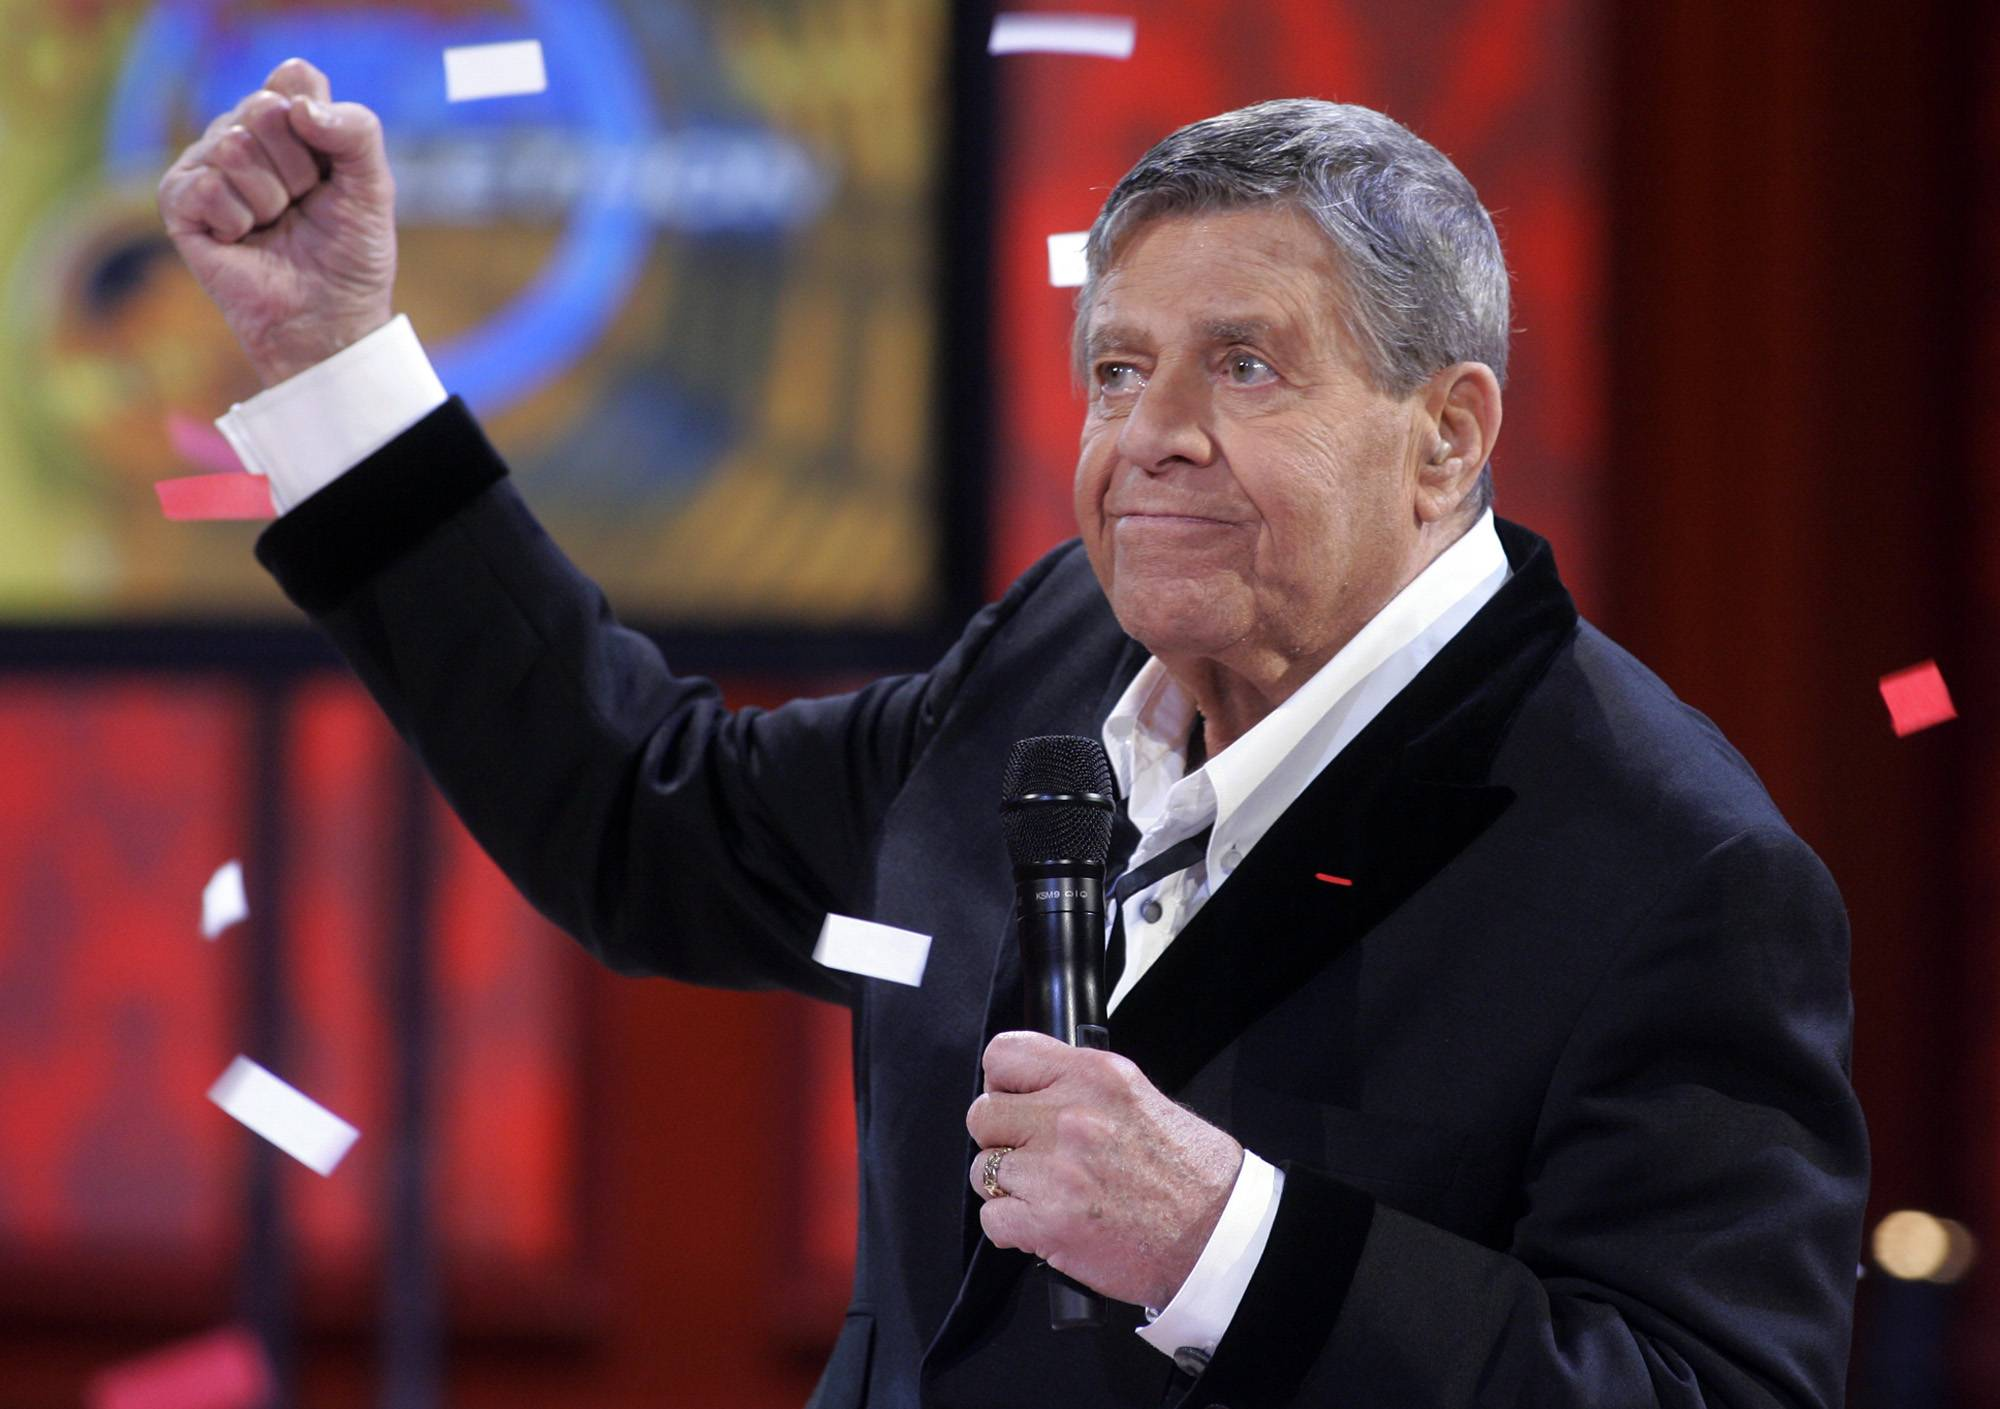 After 45 years Jerry Lewis, 85, will no longer be appearing on the Muscular Dystrophy Association's Labor Day telethon.